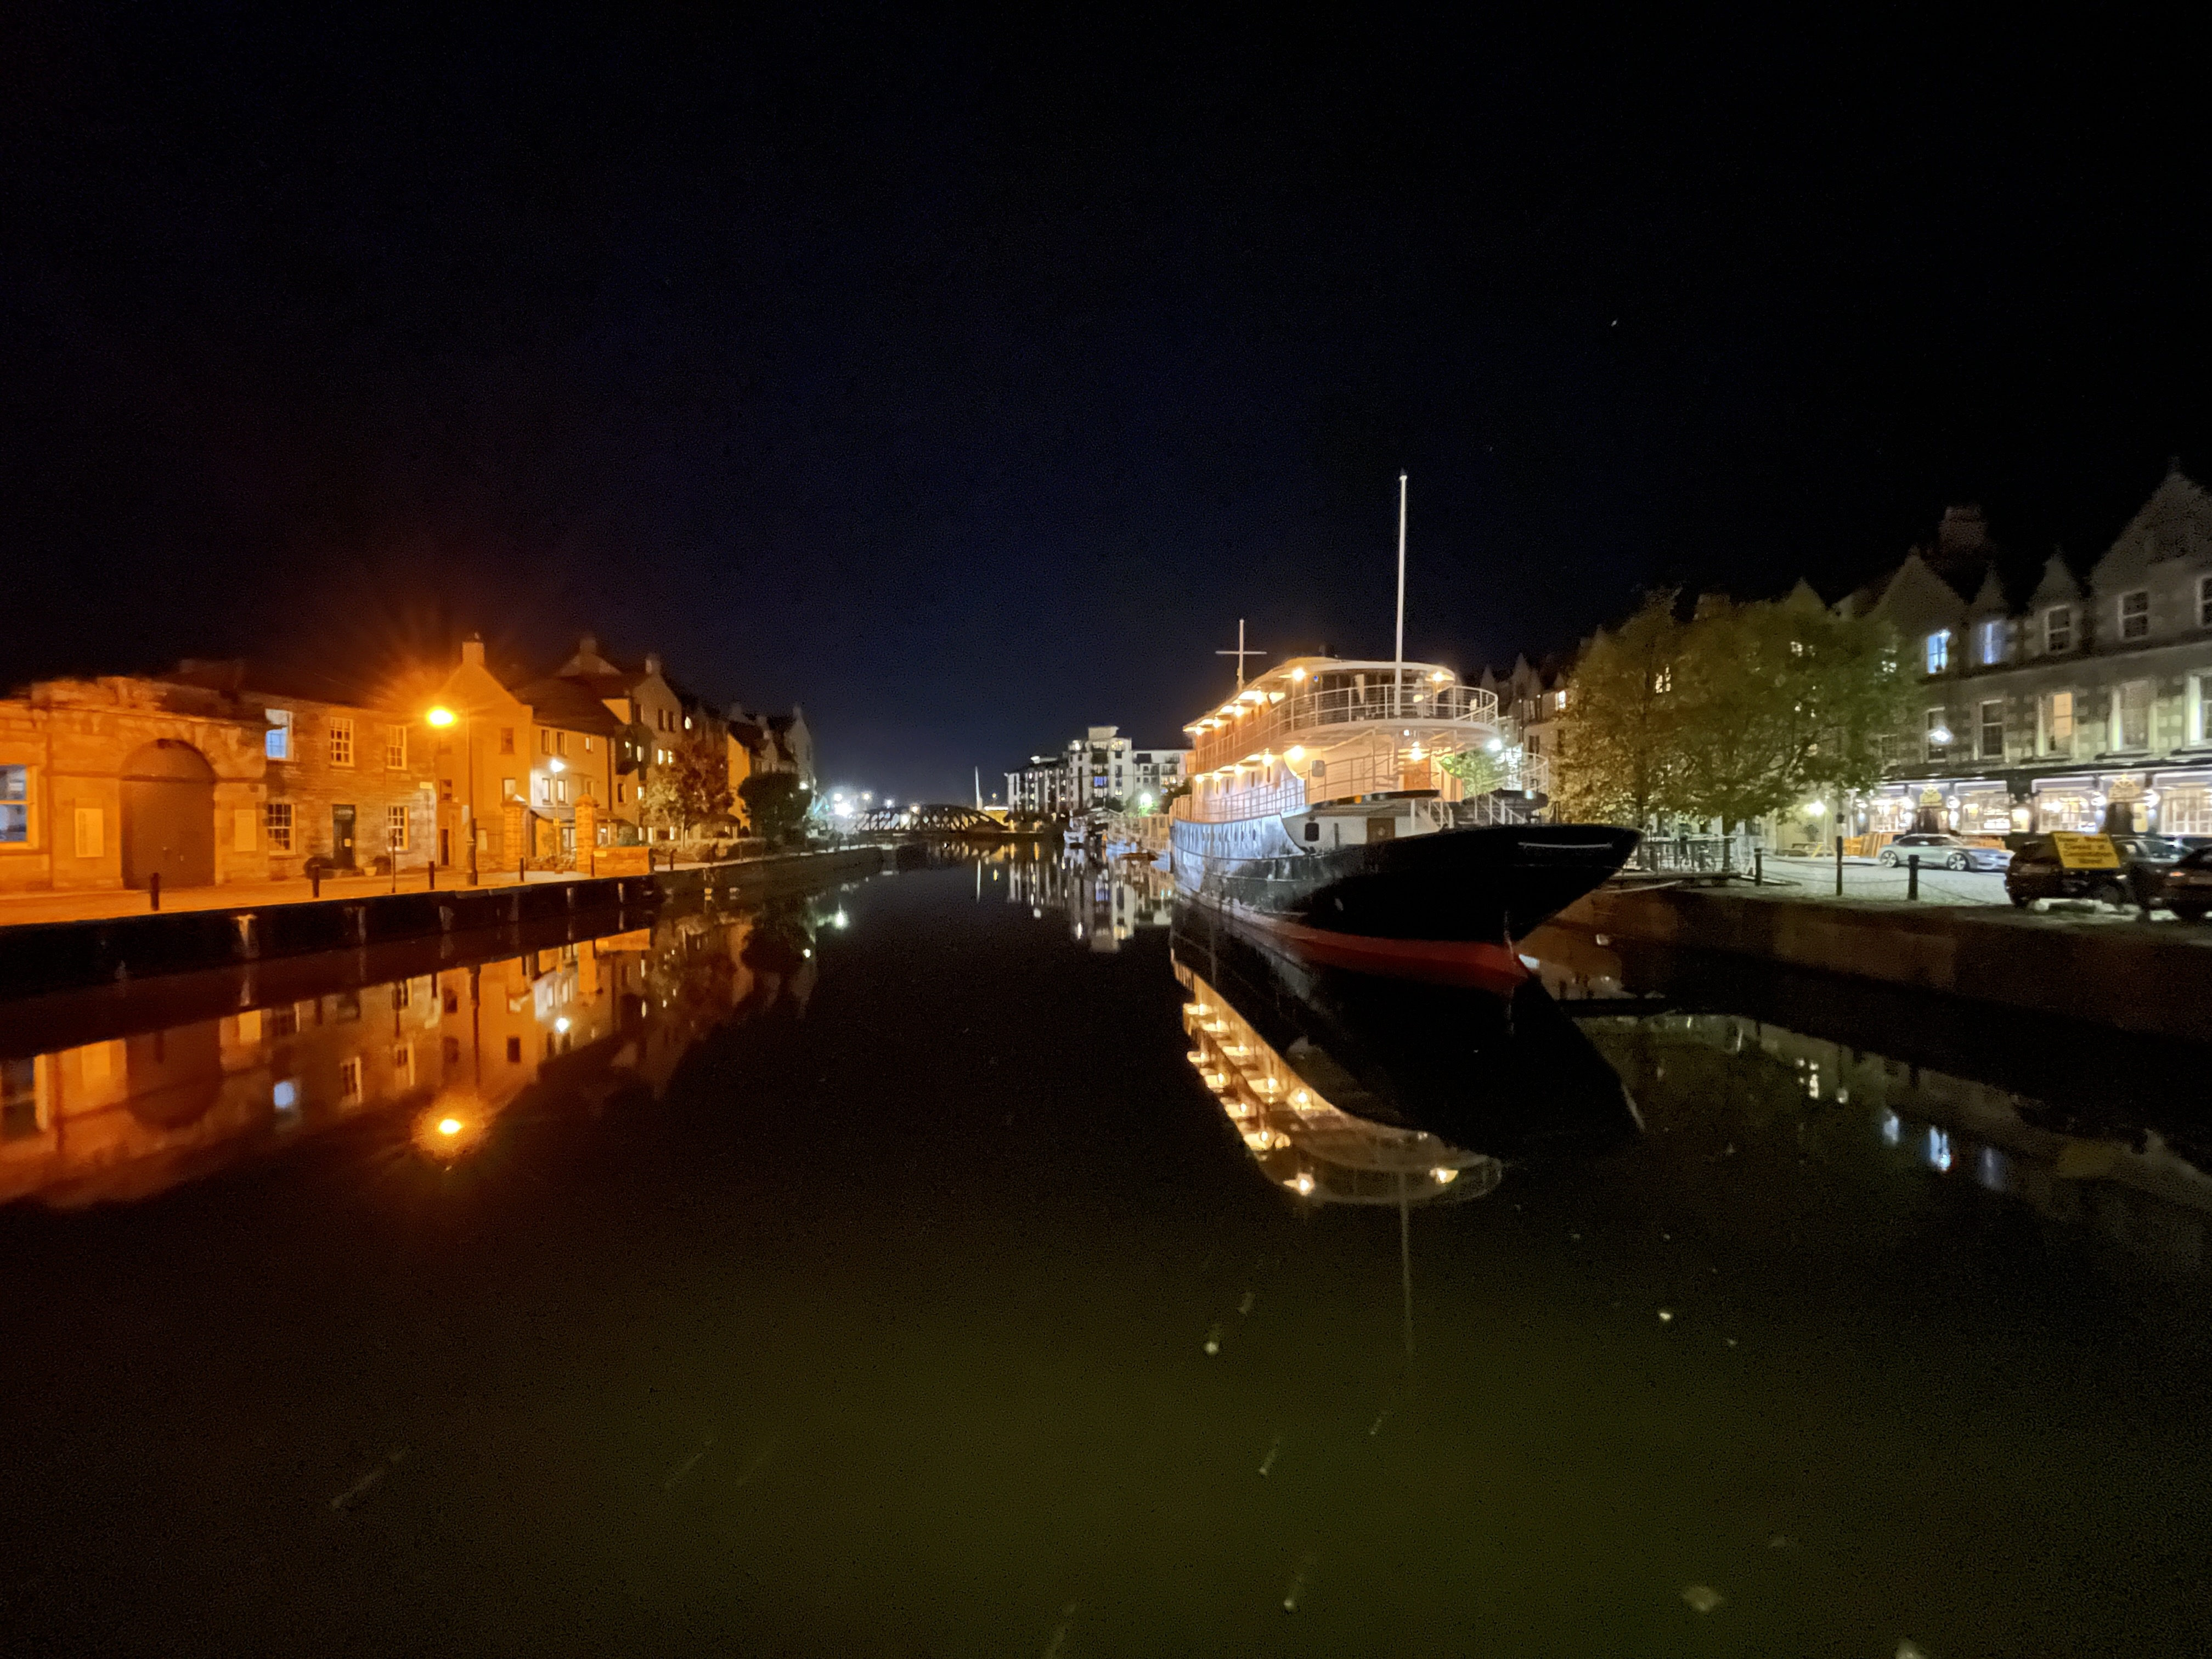 boat-wide-night-mode-iphone-12-pro-max